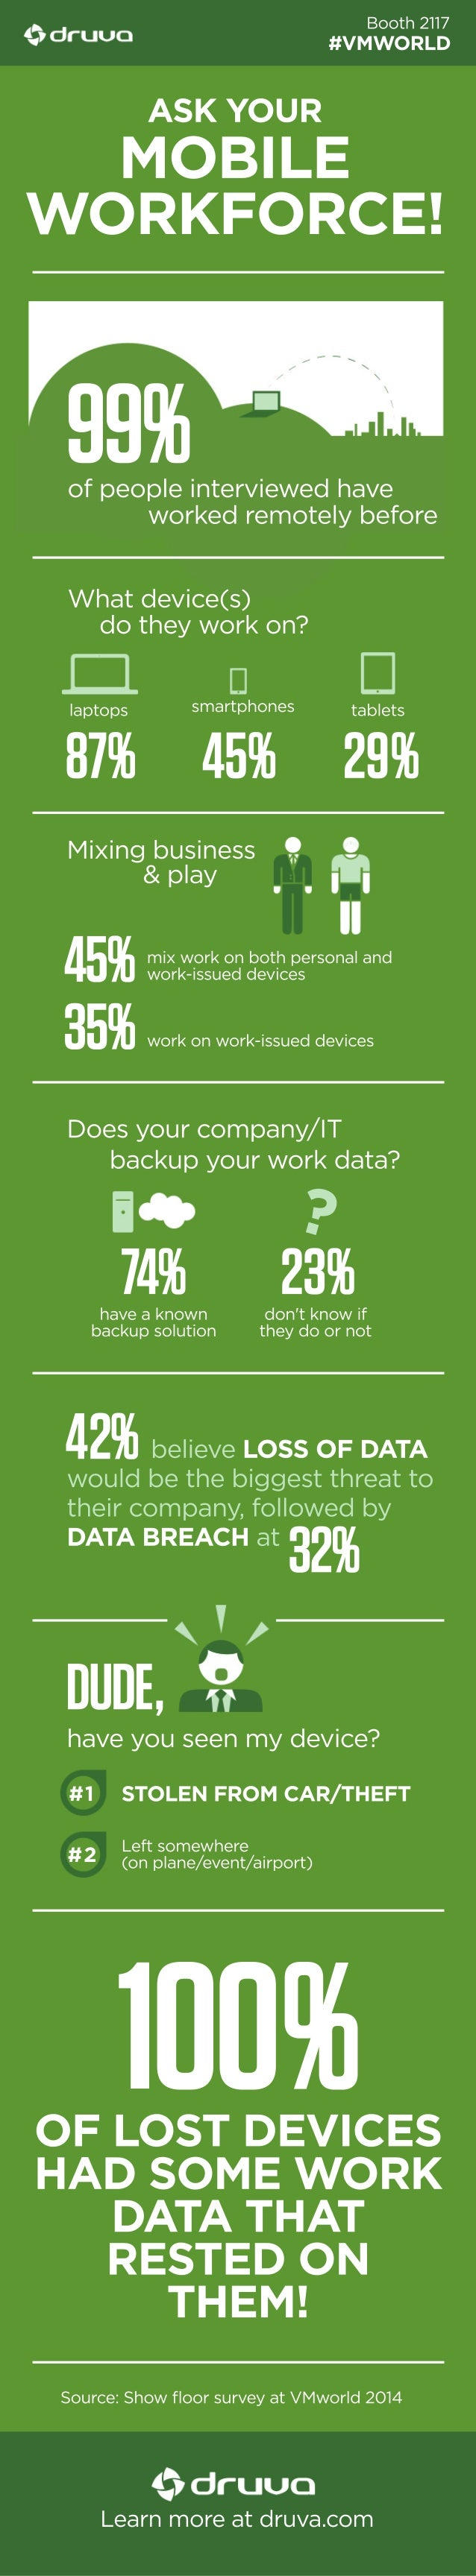 Booth 2117  #VMWORLD  ASK YOUR  MOBILE  WORKFORCE!  99%  of people interviewed have  worked remotely before  What device(s...